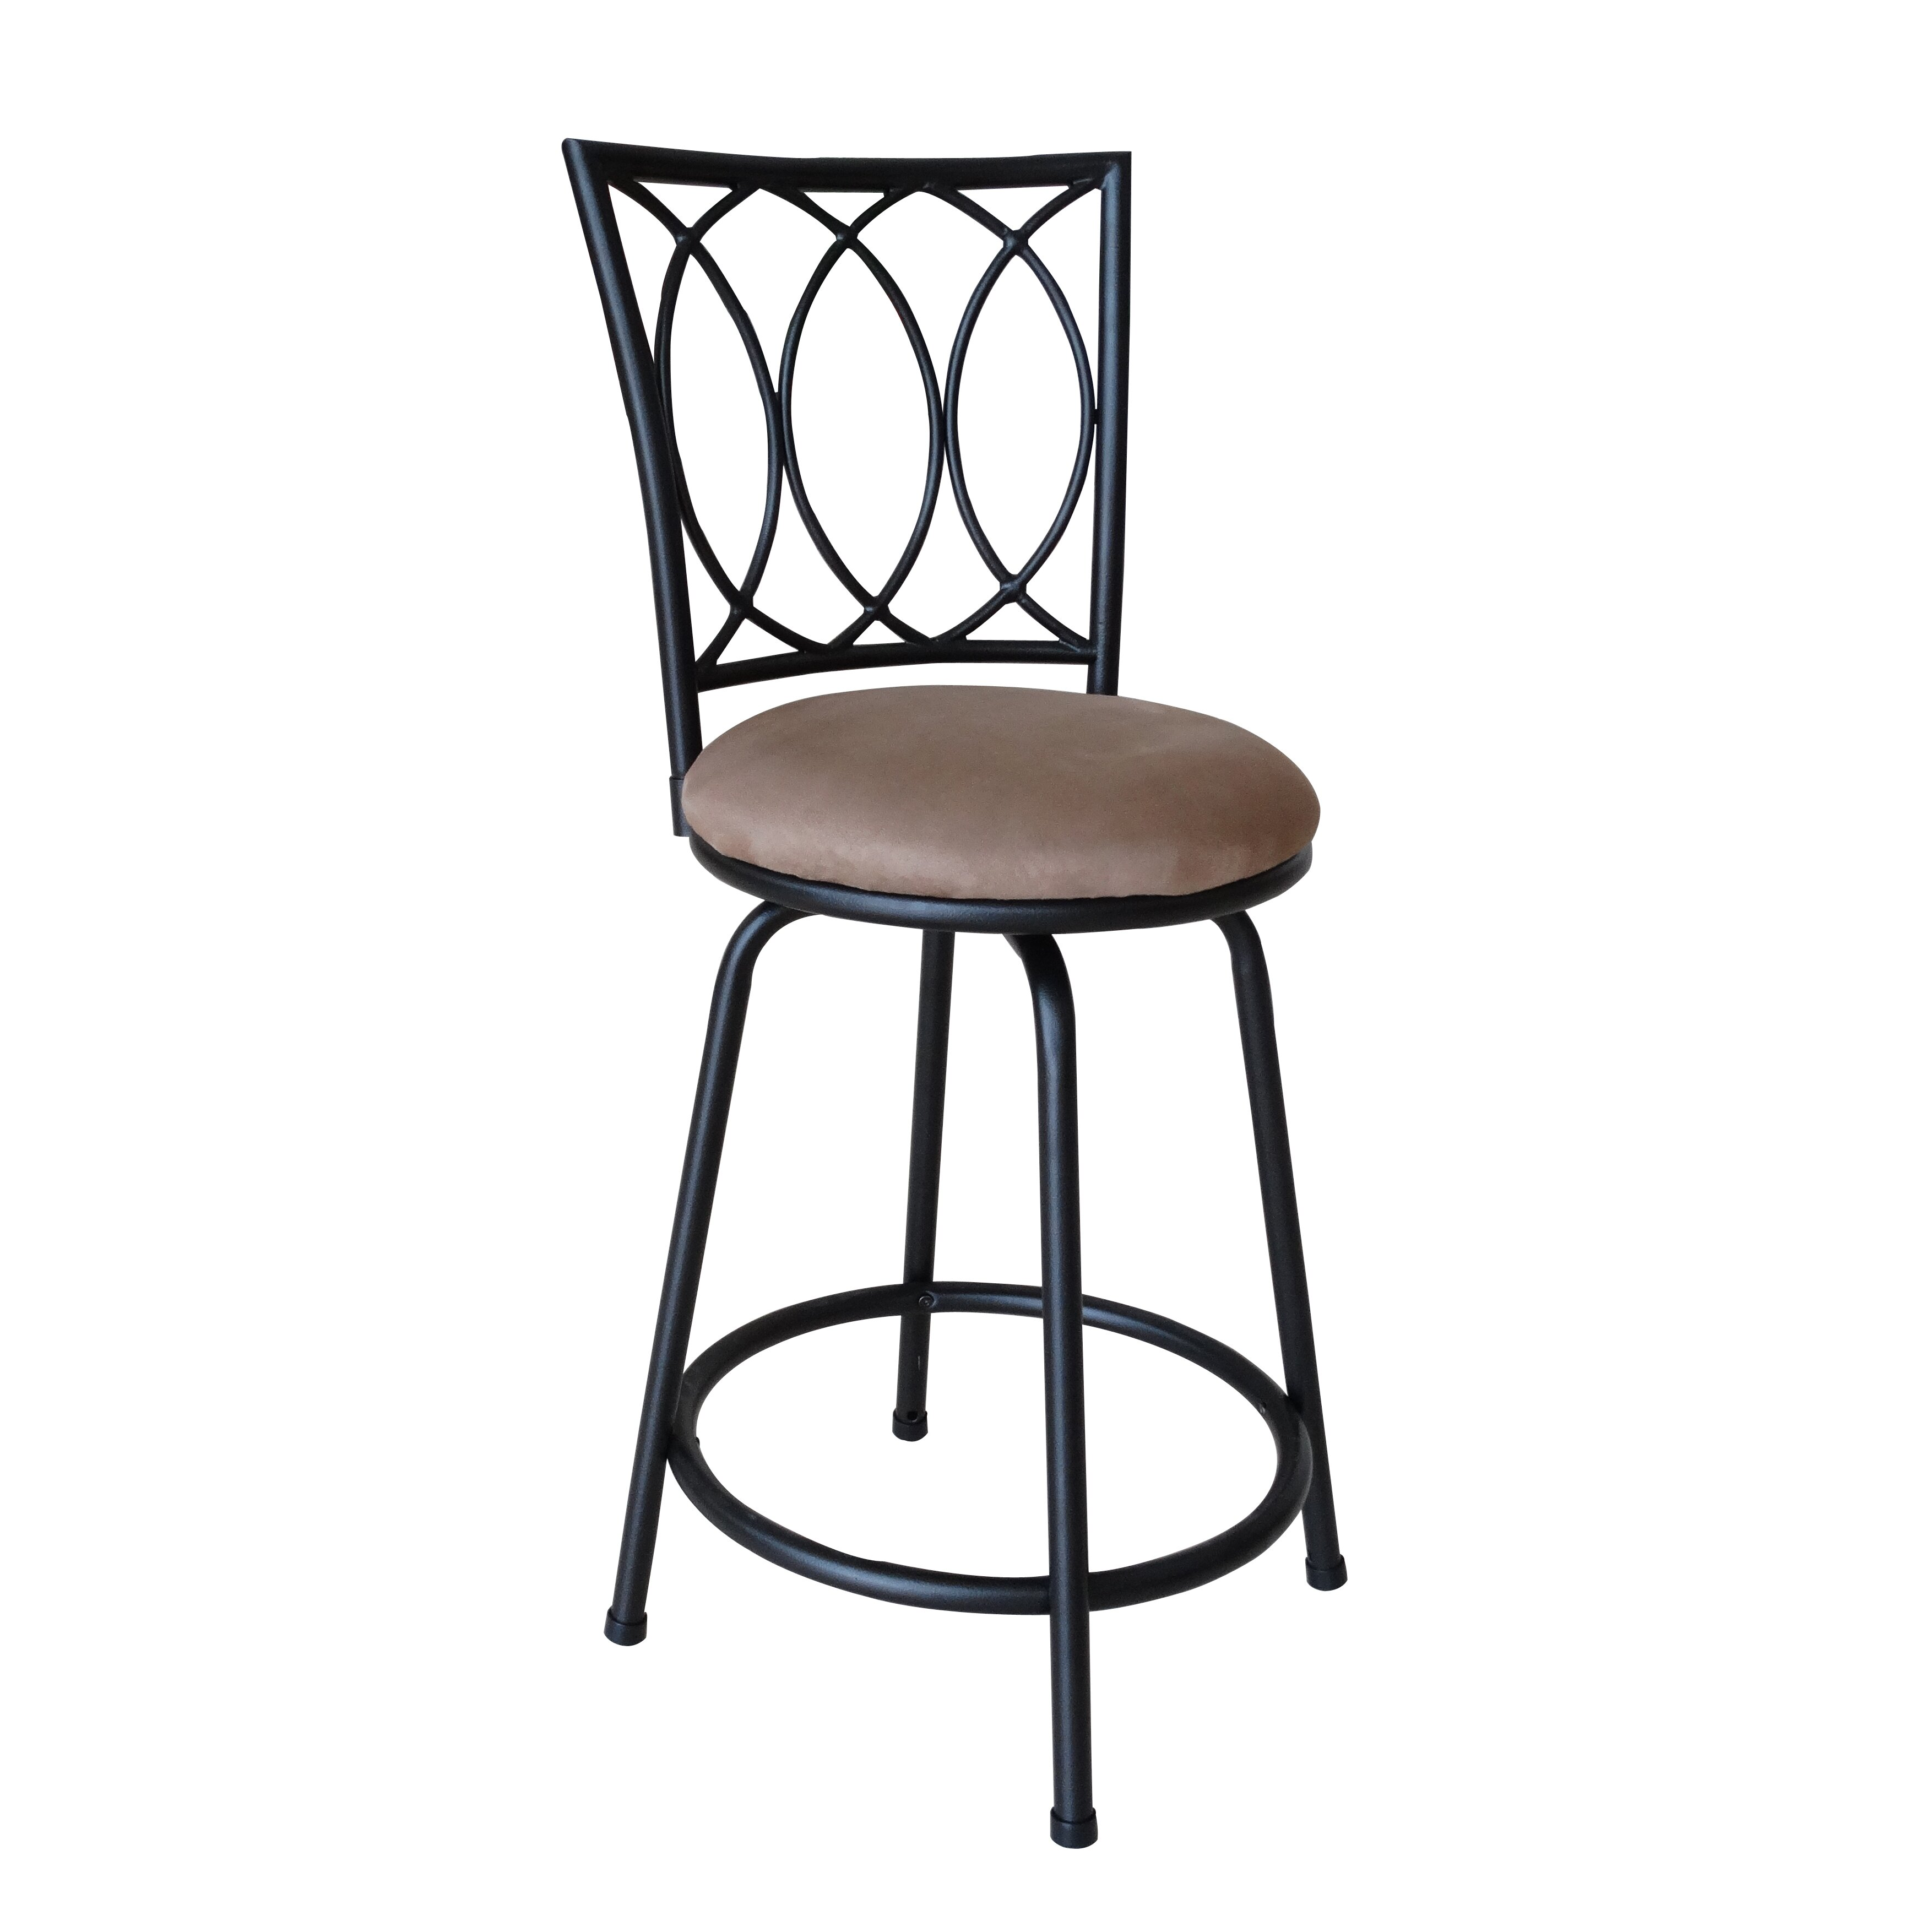 Roundhill Furniture Adjustable Height Bar Stool with  : Redico Adjustable Metal Barstool Powder Coated Brown PC036 from www.wayfair.com size 3508 x 3508 jpeg 555kB